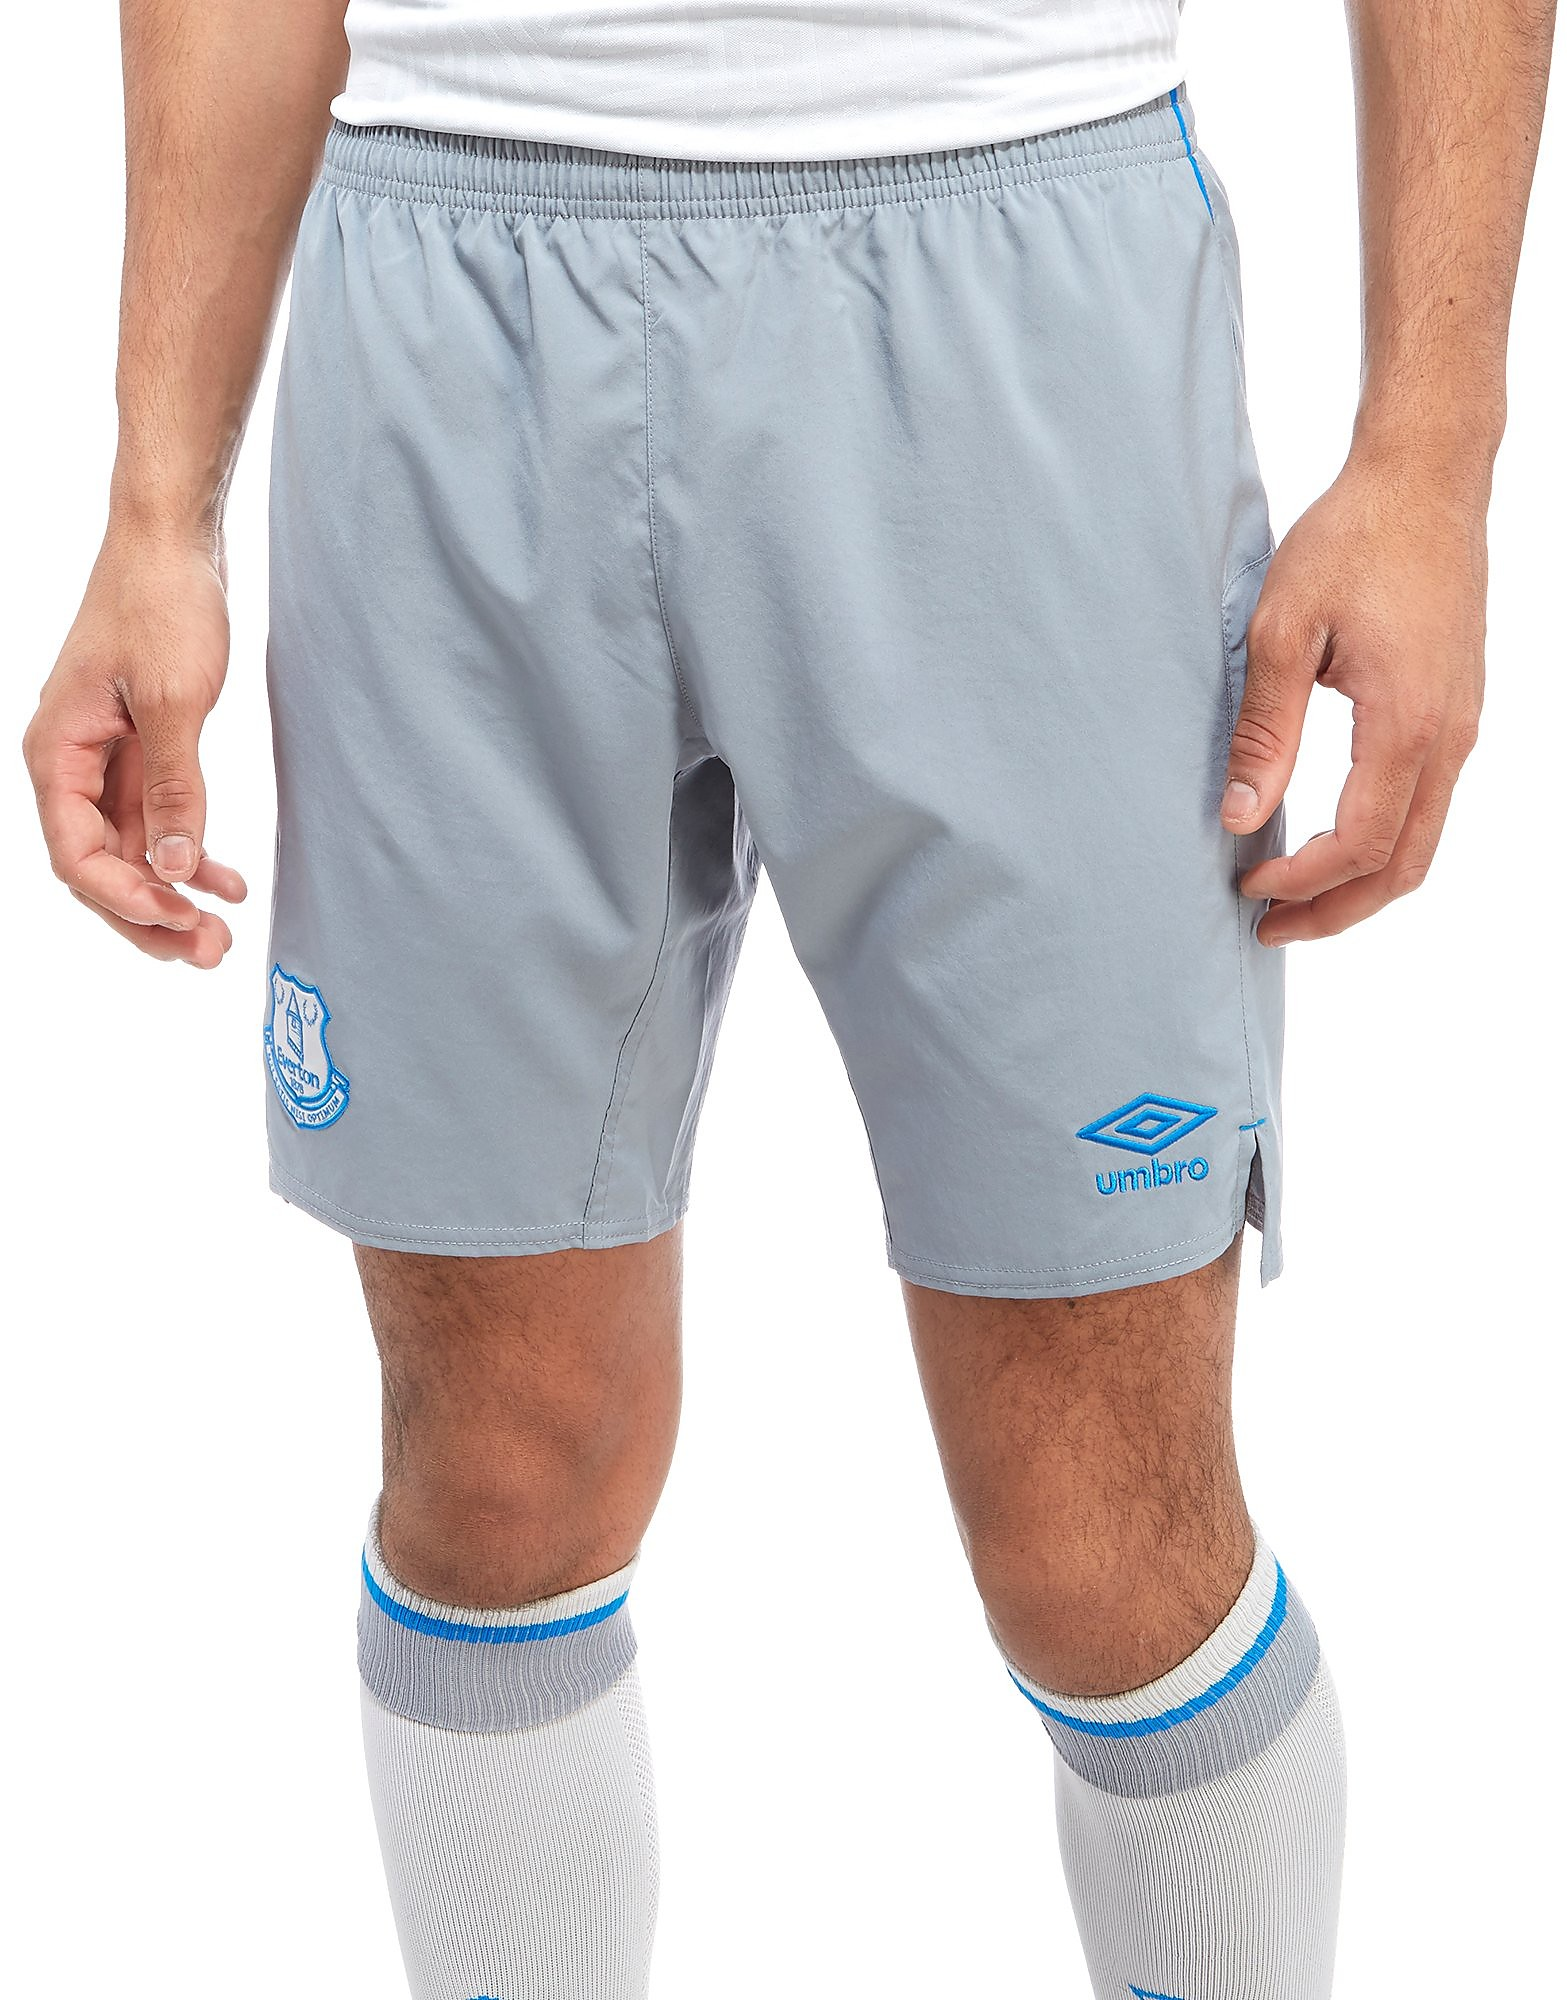 Umbro Everton FC 2017/18 Away Shorts